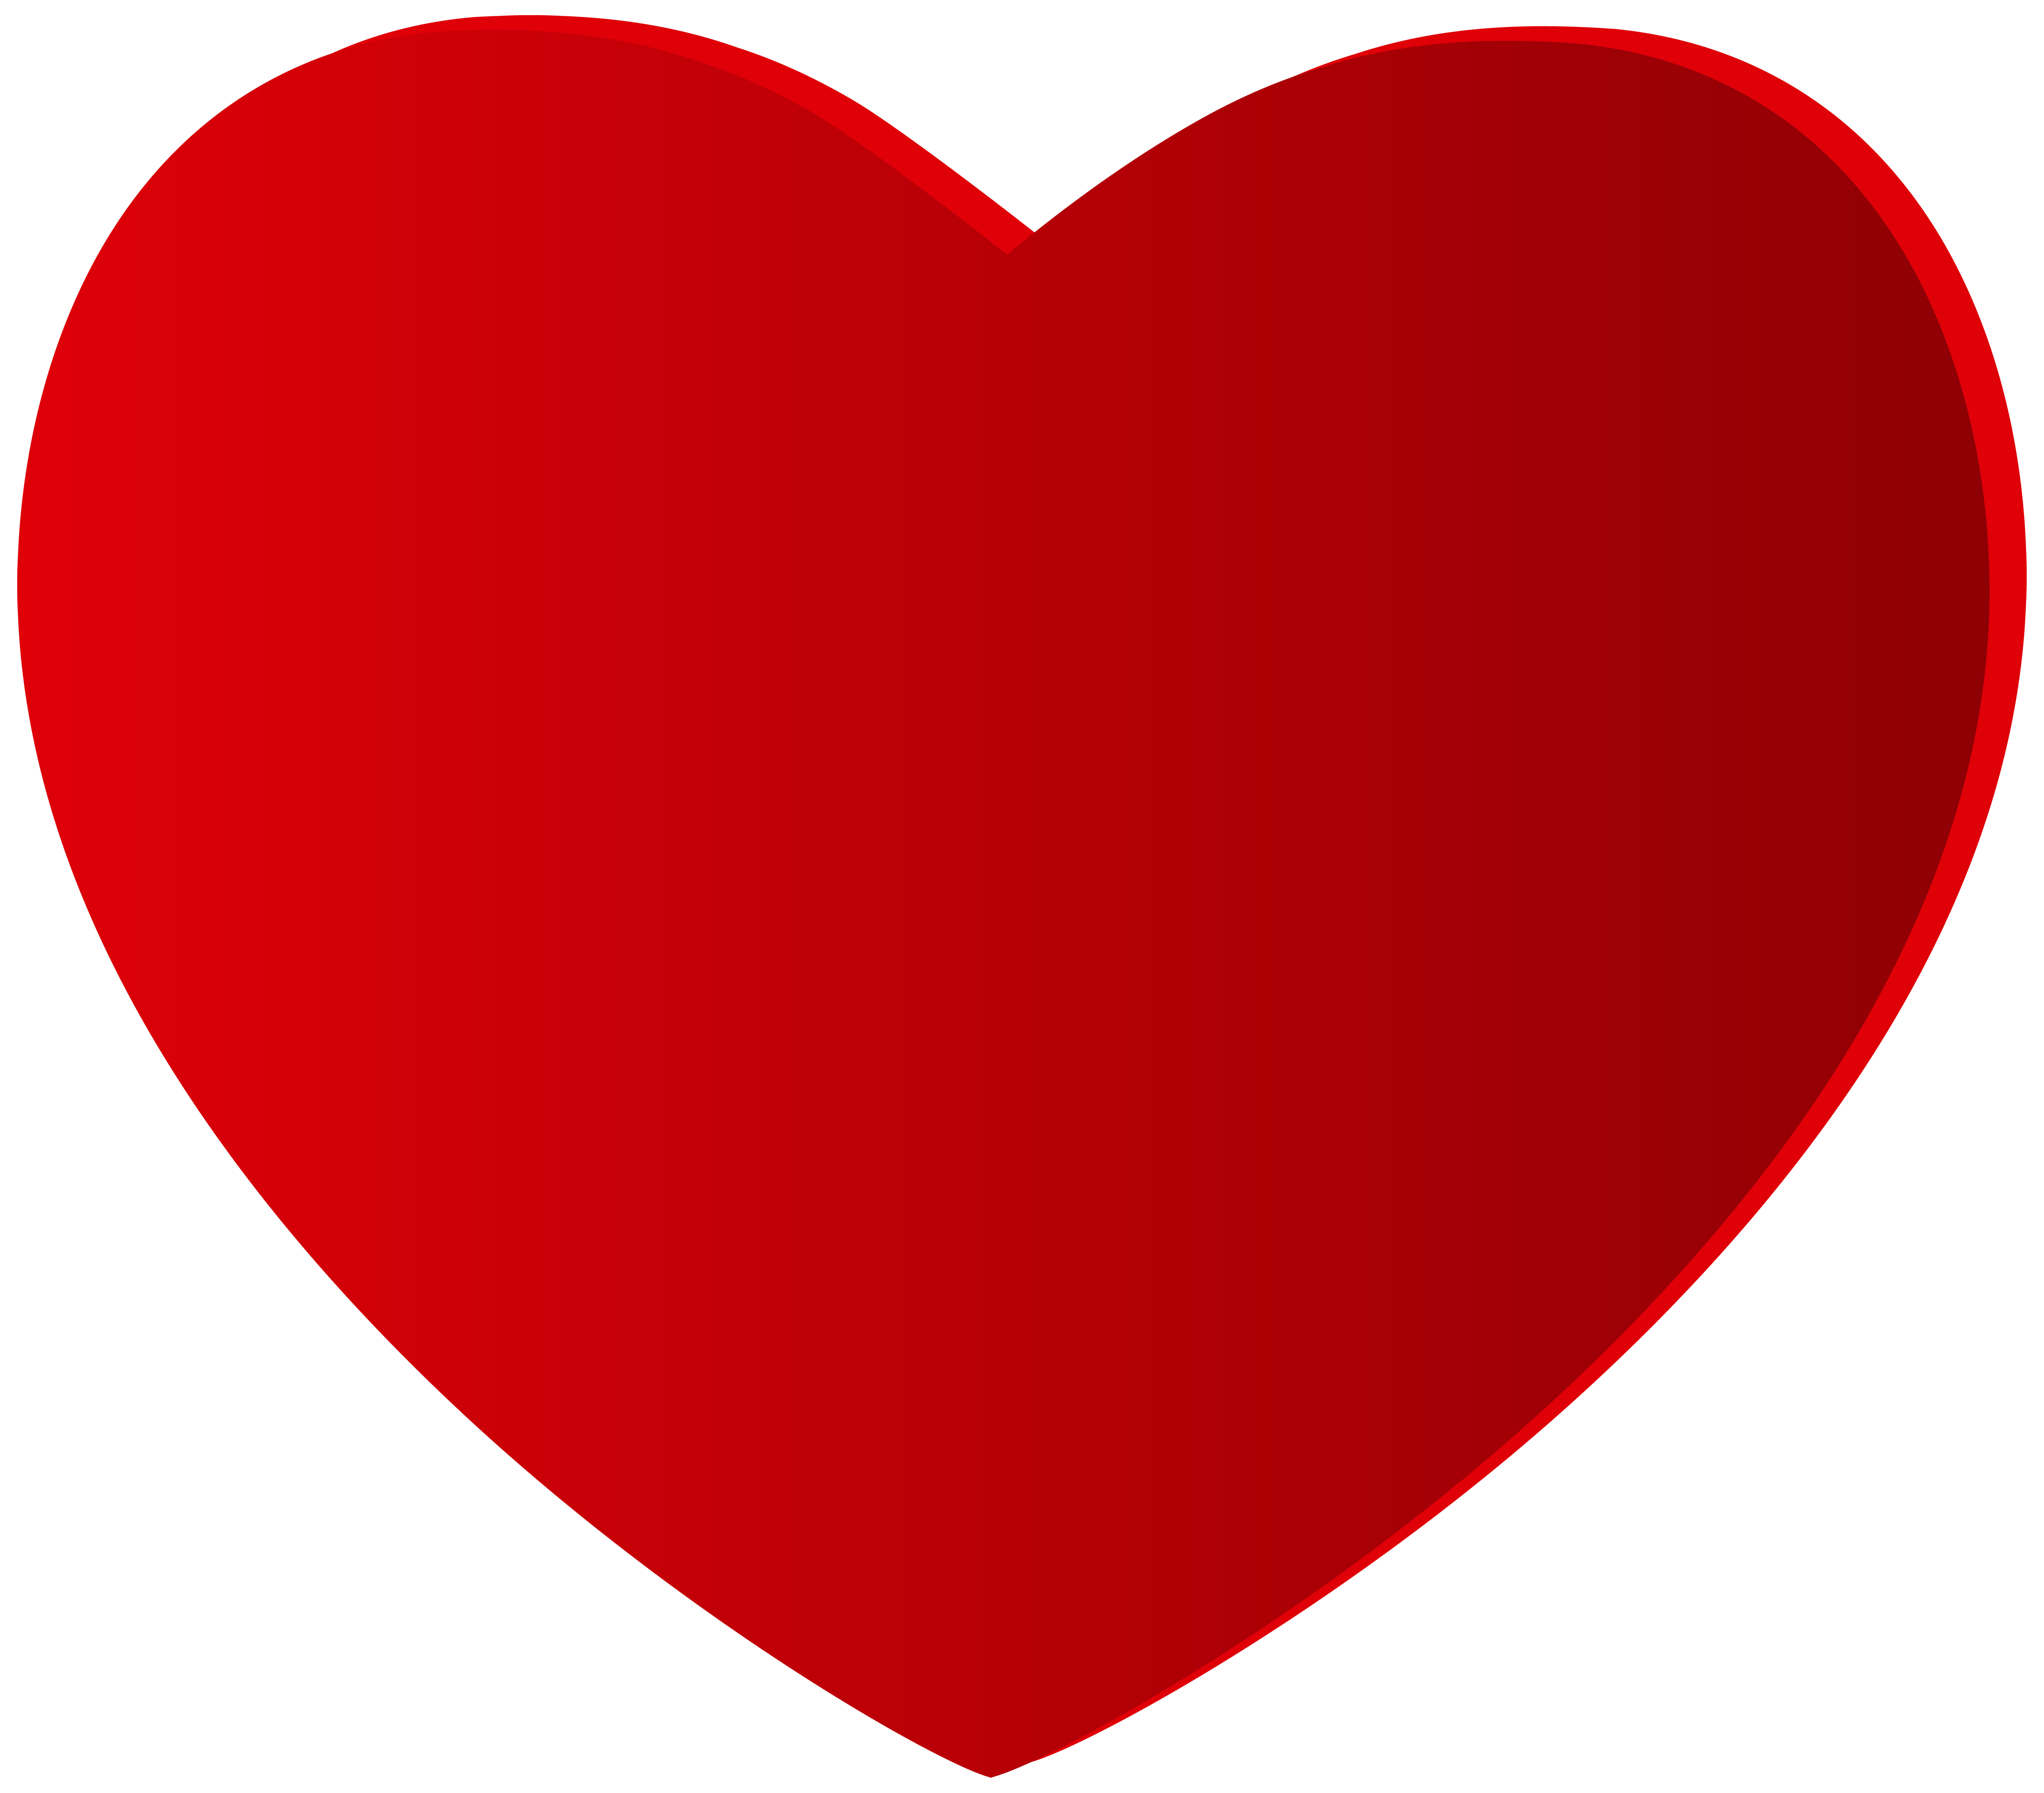 Large red heart clipart web png